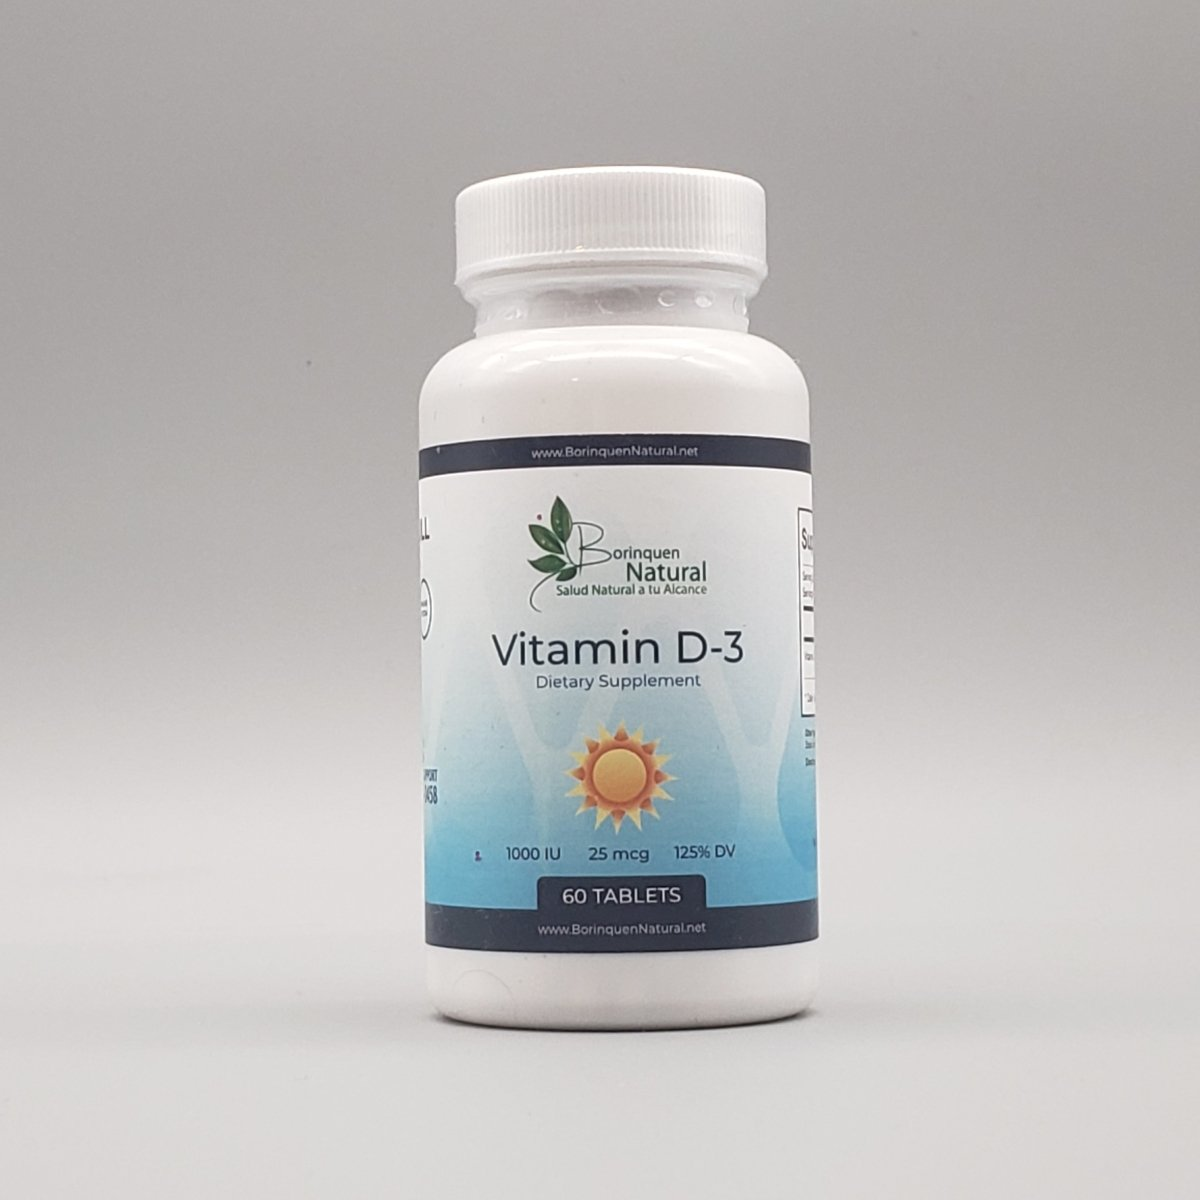 Vitamina D-3 - 1000UI - 25mcg - 125% DV - 60 Tablets - Borinquen Natural